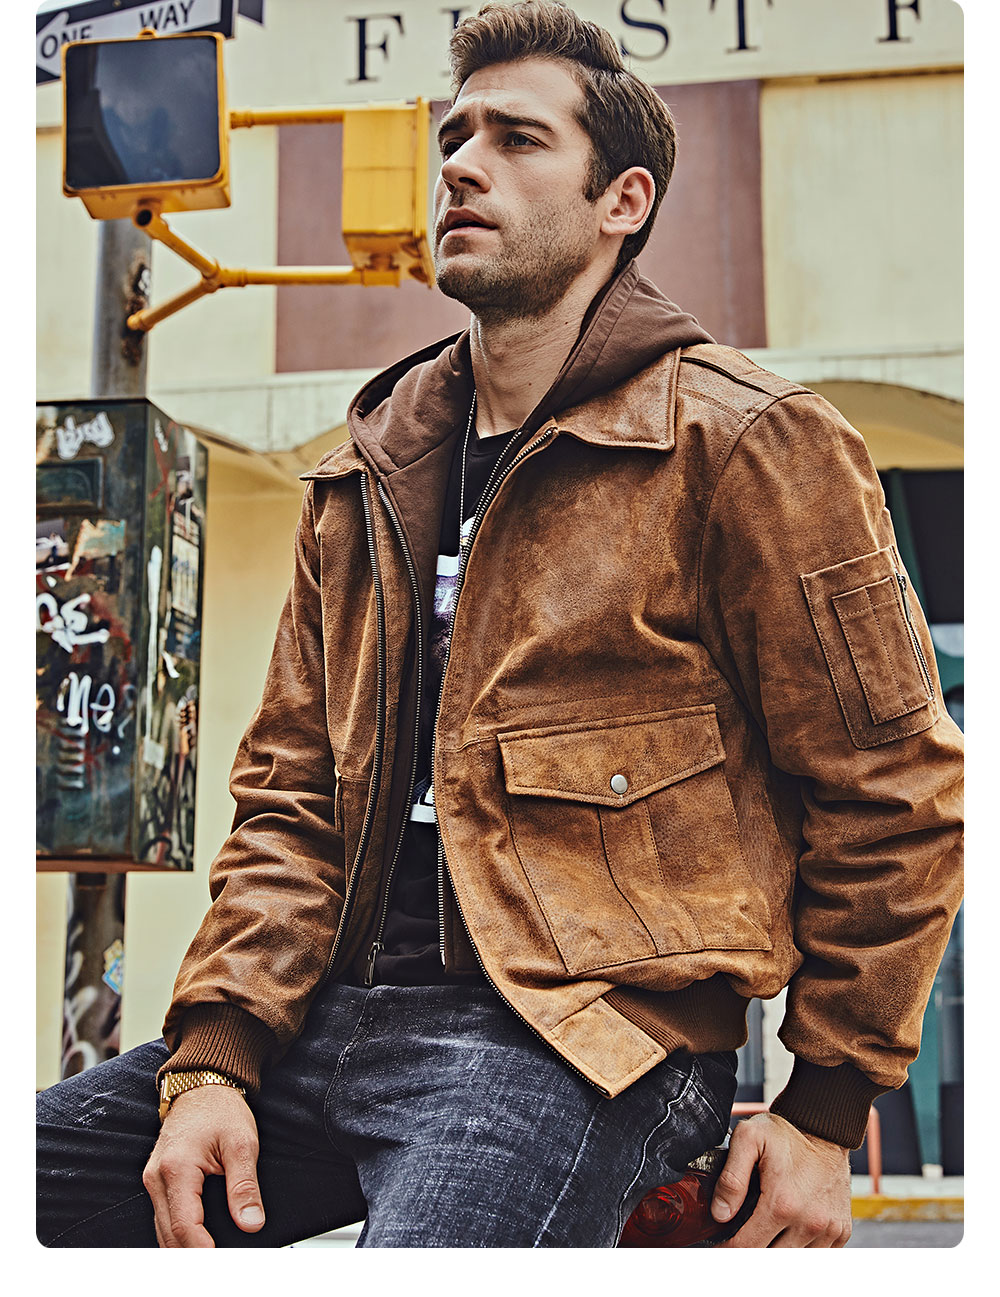 H816ad3fbfe5443a983d1f0fa0fb25ef3w FLAVOR New Men's Genuine Leather Bomber Jackets Removable Hood Men Air Forca Aviator winter coat Men Warm Real Leather Jacket